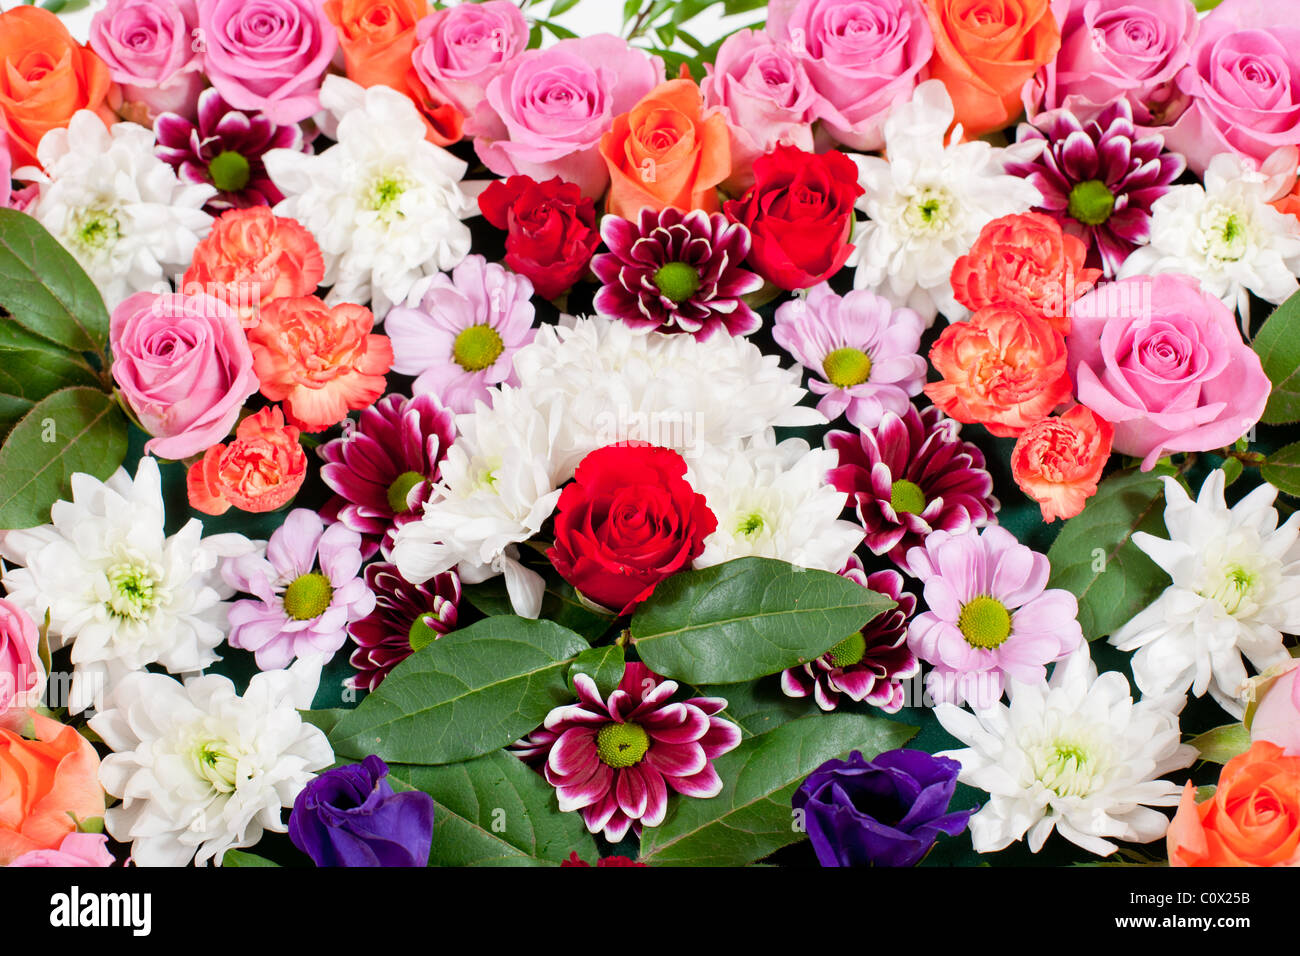 Heart shaped funeral flowers stock photo royalty free image heart shaped funeral flowers izmirmasajfo Gallery